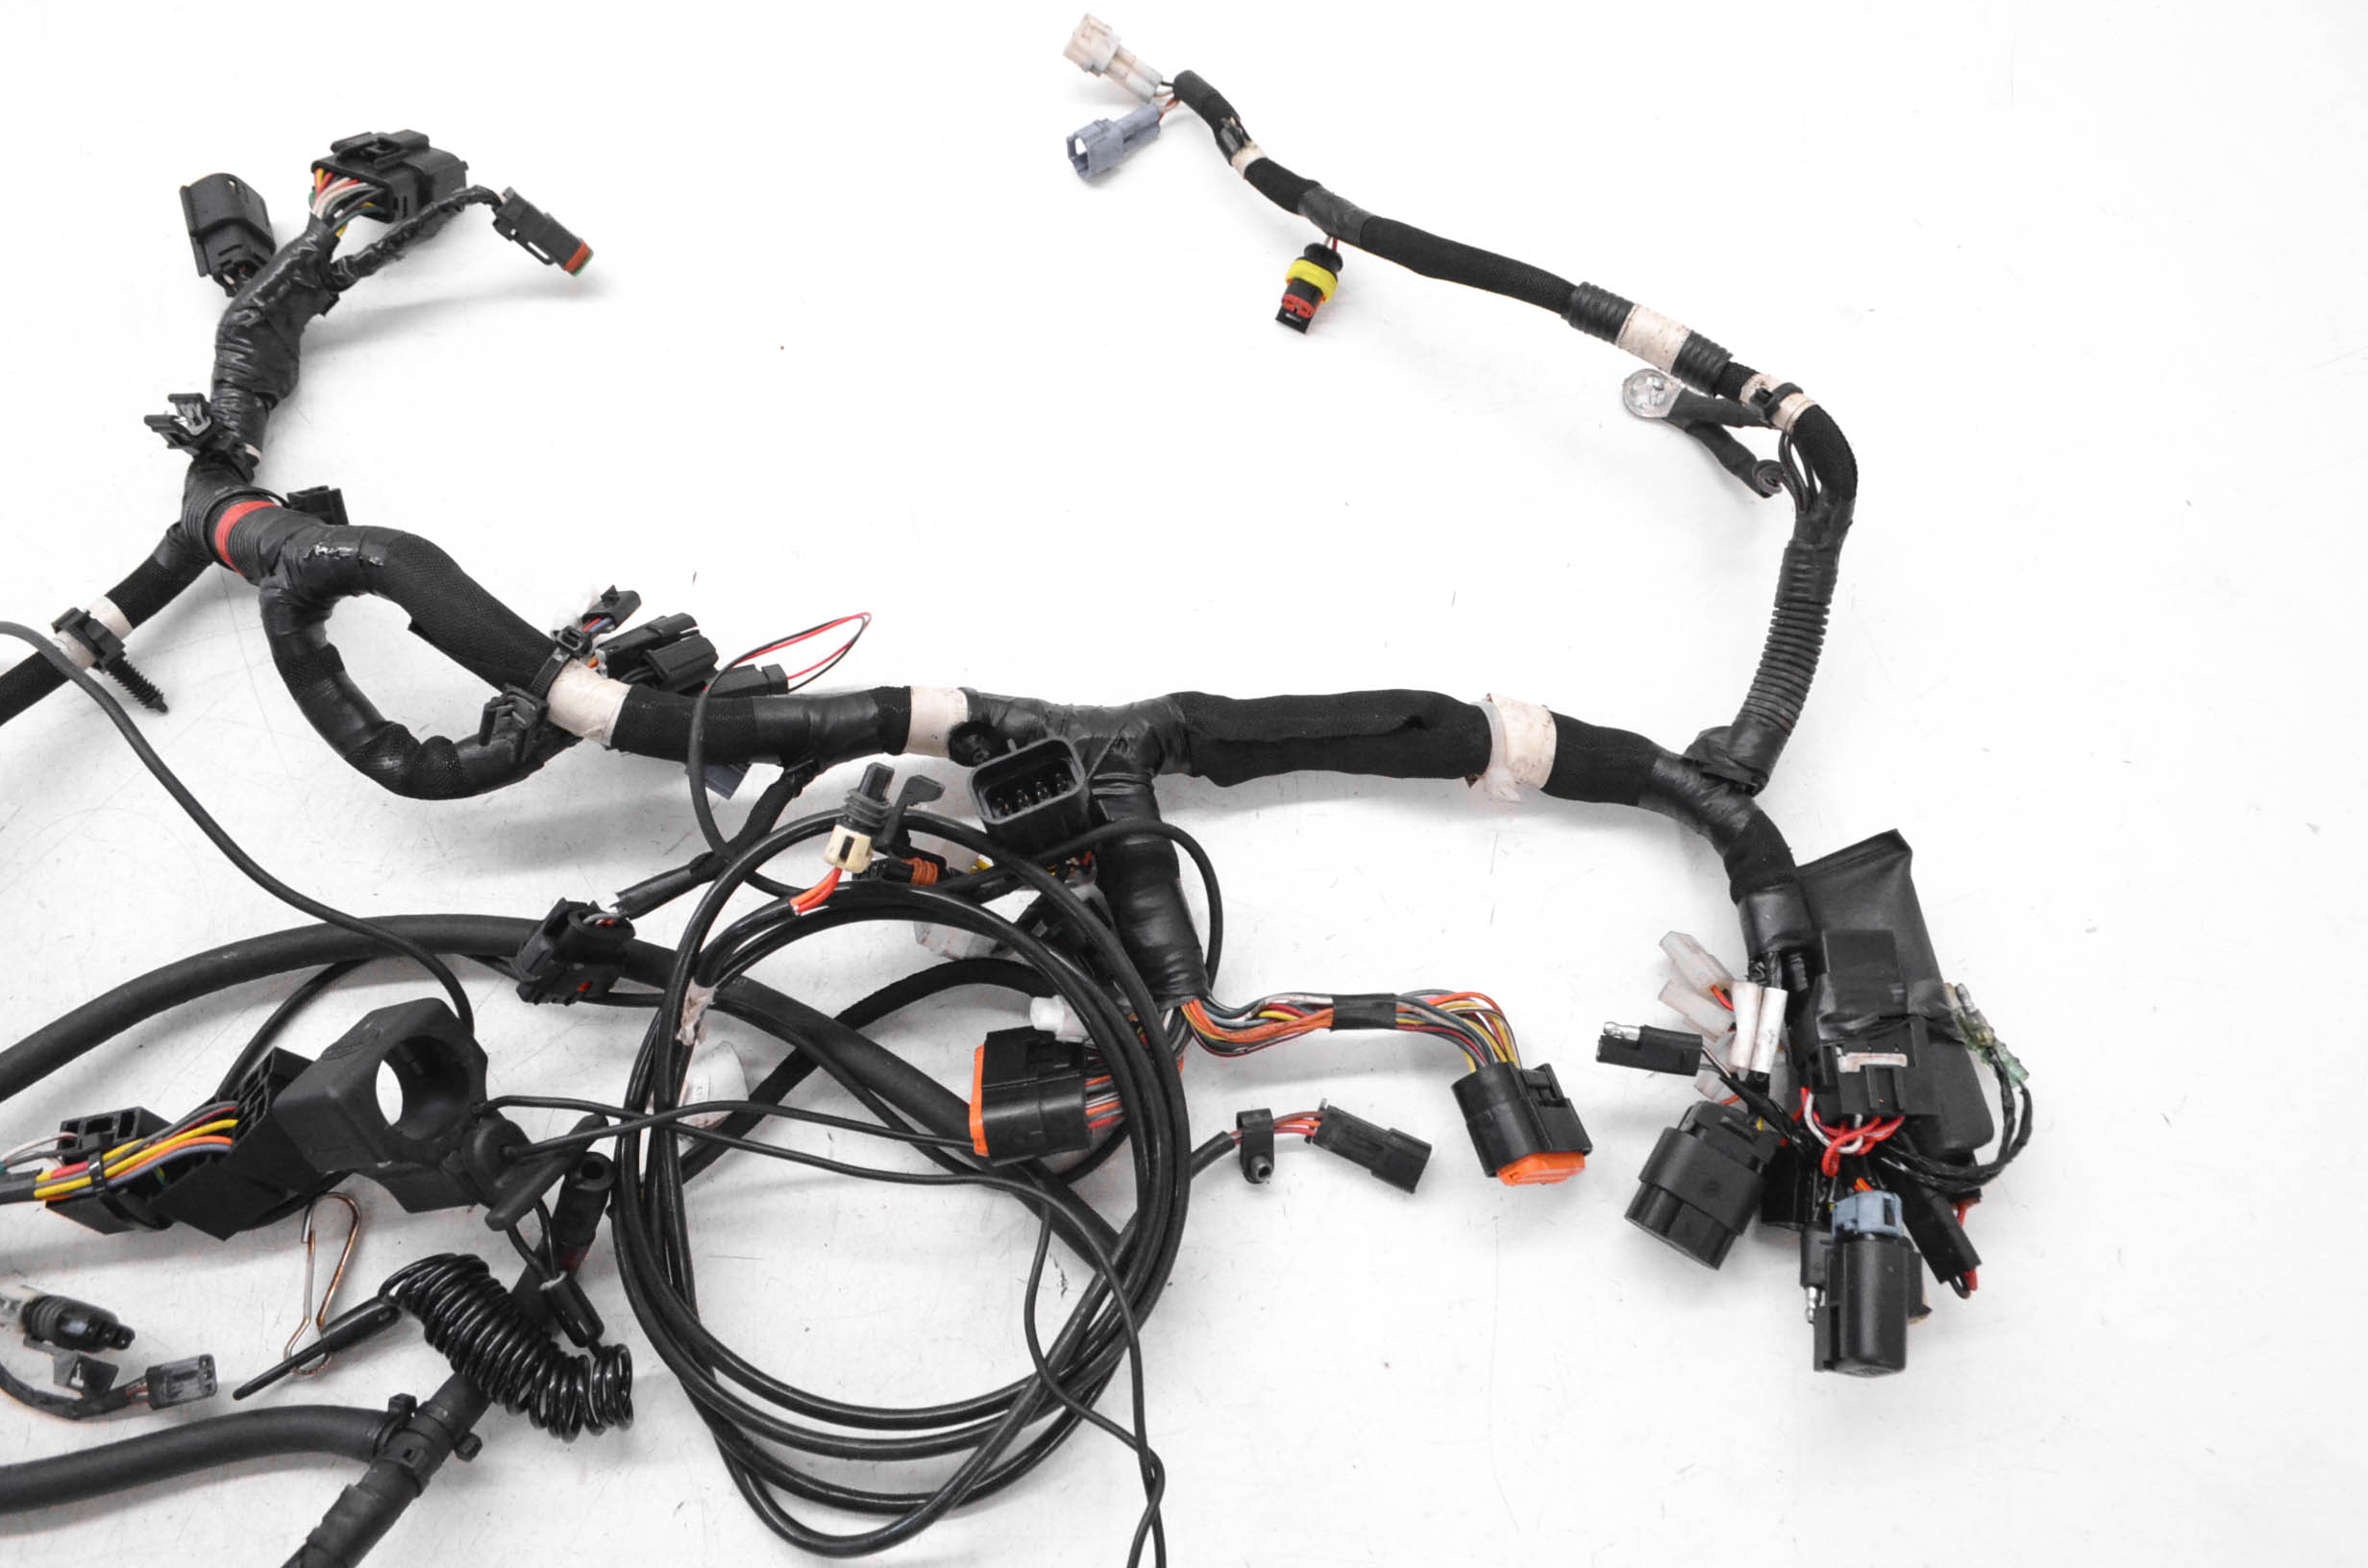 15 Polaris Pro Rmk 800 Wire Harness Electrical Wiring 155